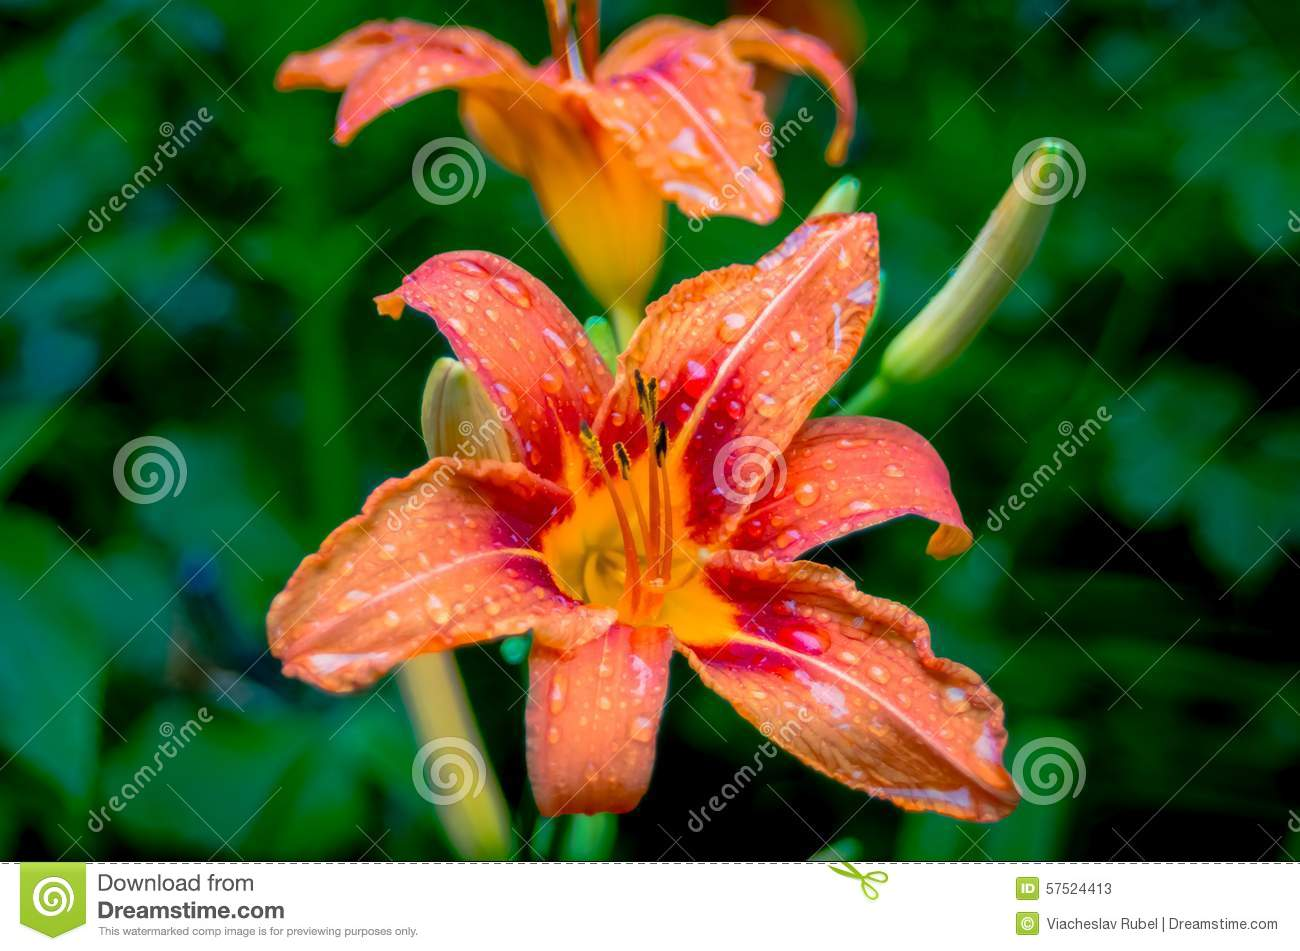 Tiger lilies in garden several species of orange stock image image tiger lilies in garden several species of orange izmirmasajfo